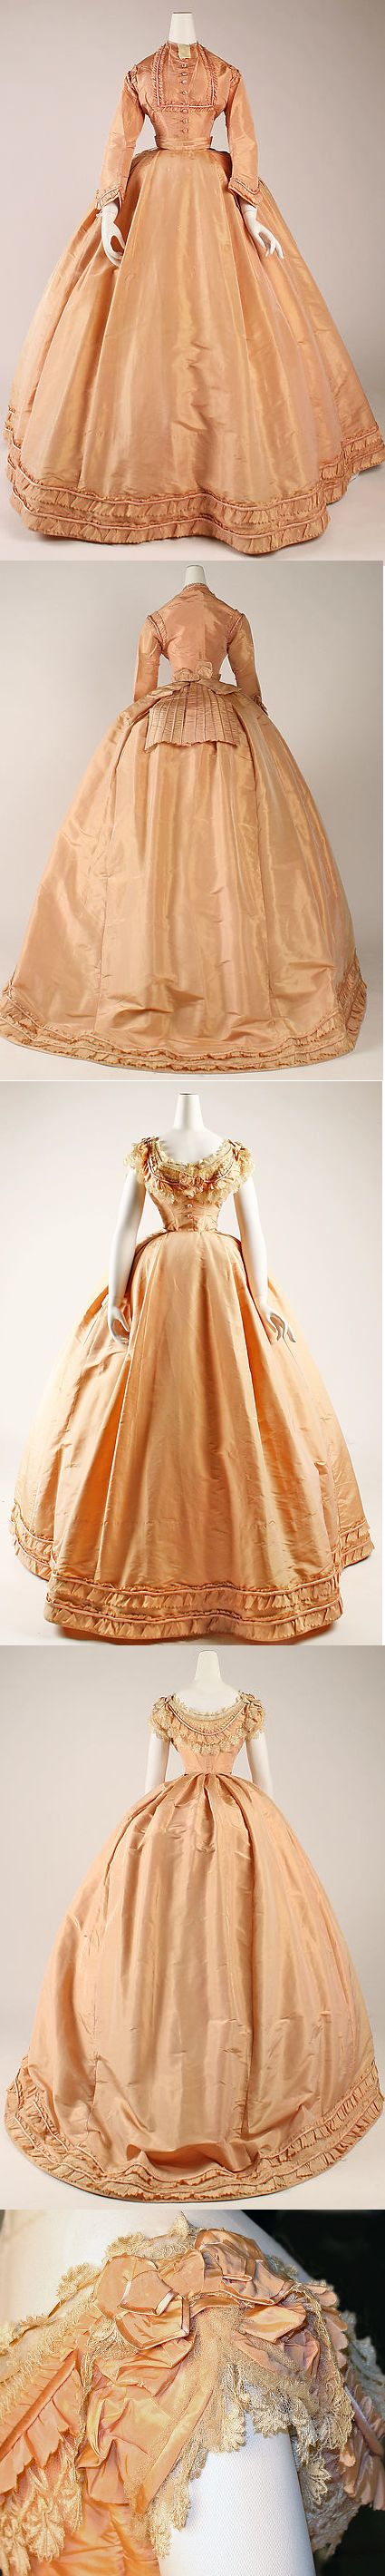 Metropolitan Museum of Art French pink silk taffeta dress with bodices for day and evening, circa 1864.